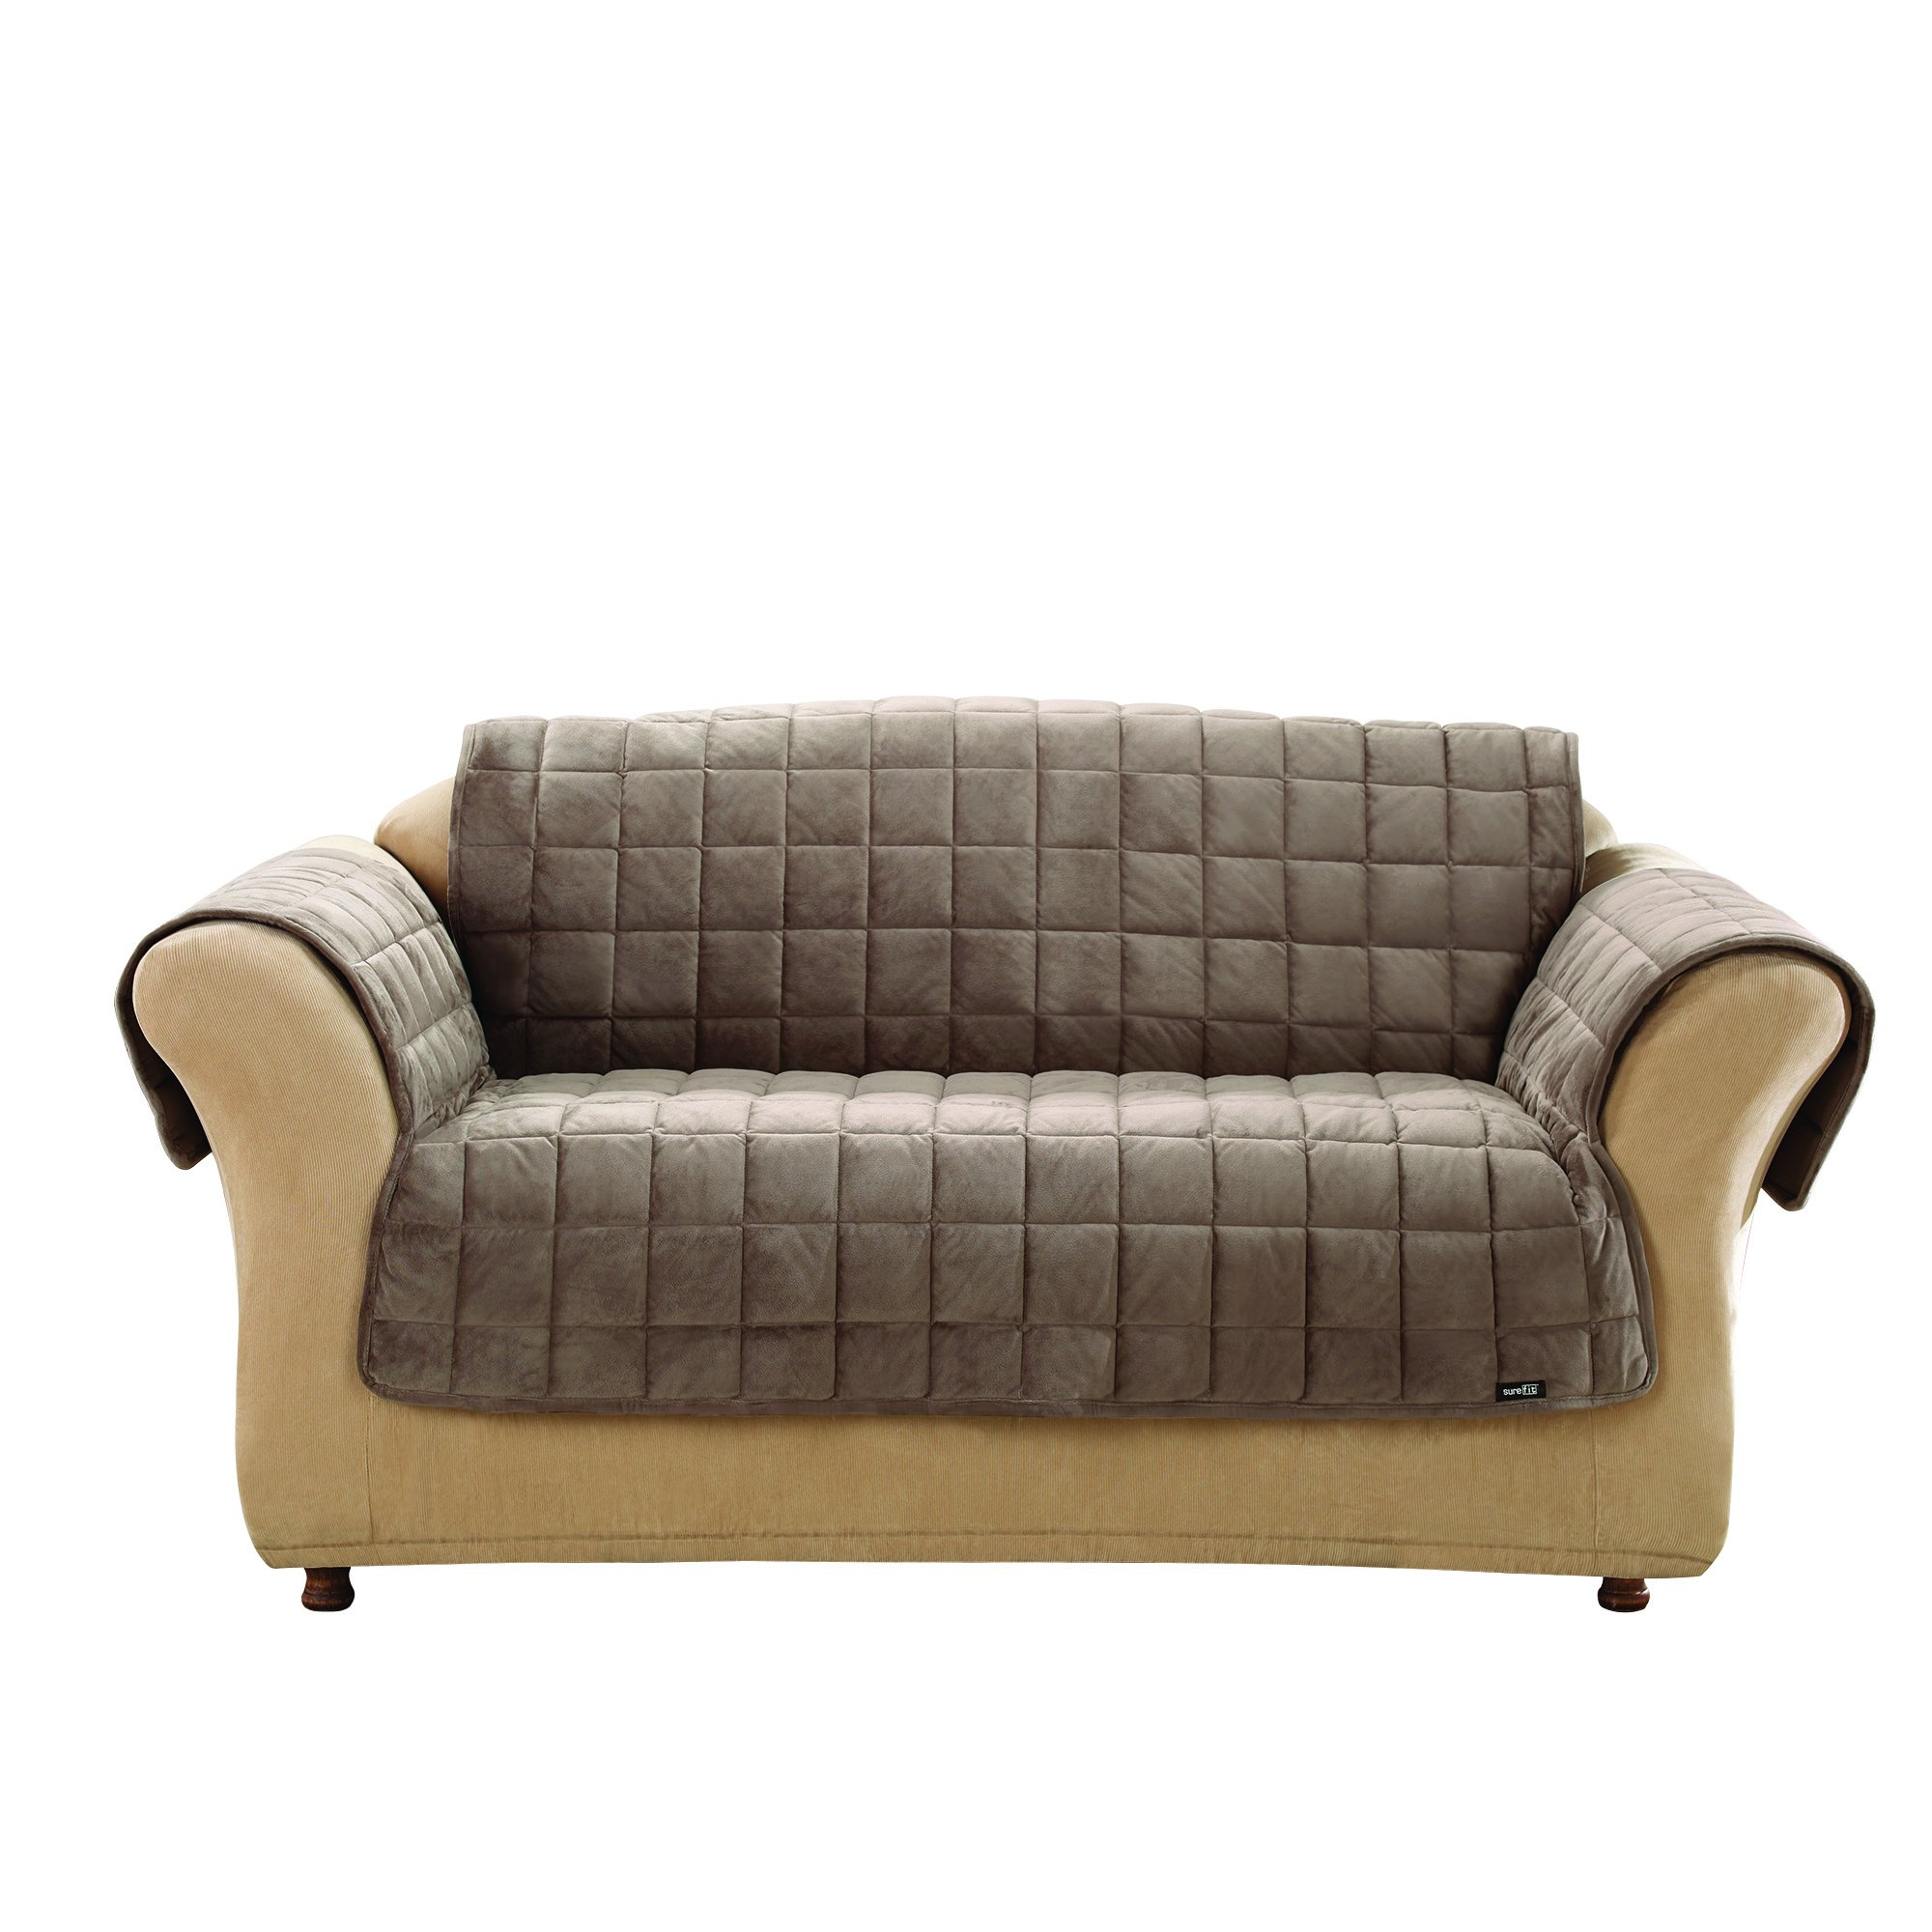 Sure Fit Deluxe Sofa Furniture Cover (with arms) - Sable